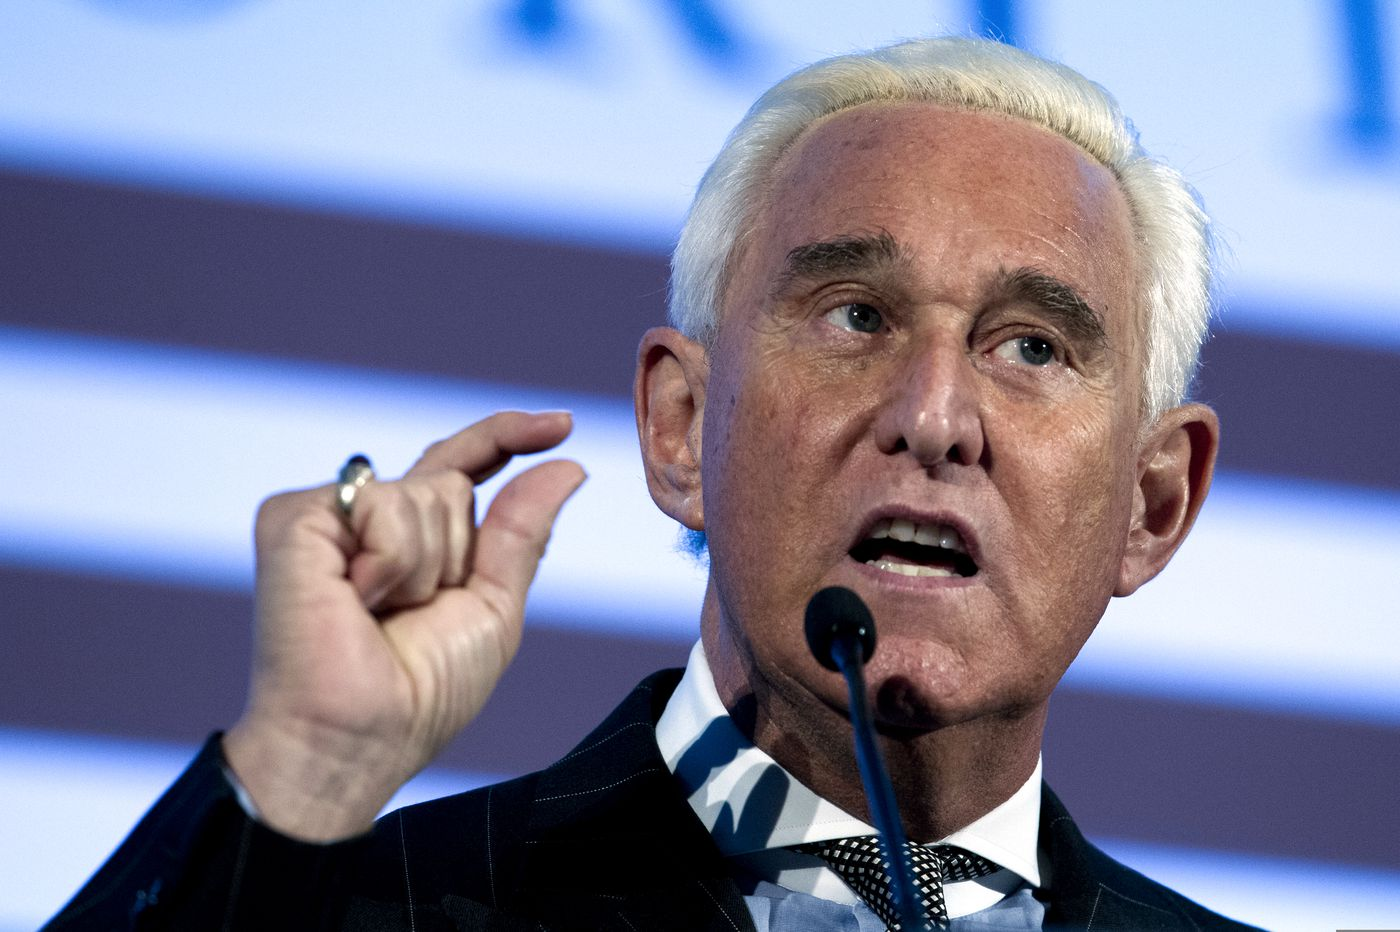 Trump confidant Roger Stone is arrested says he's falsely accused